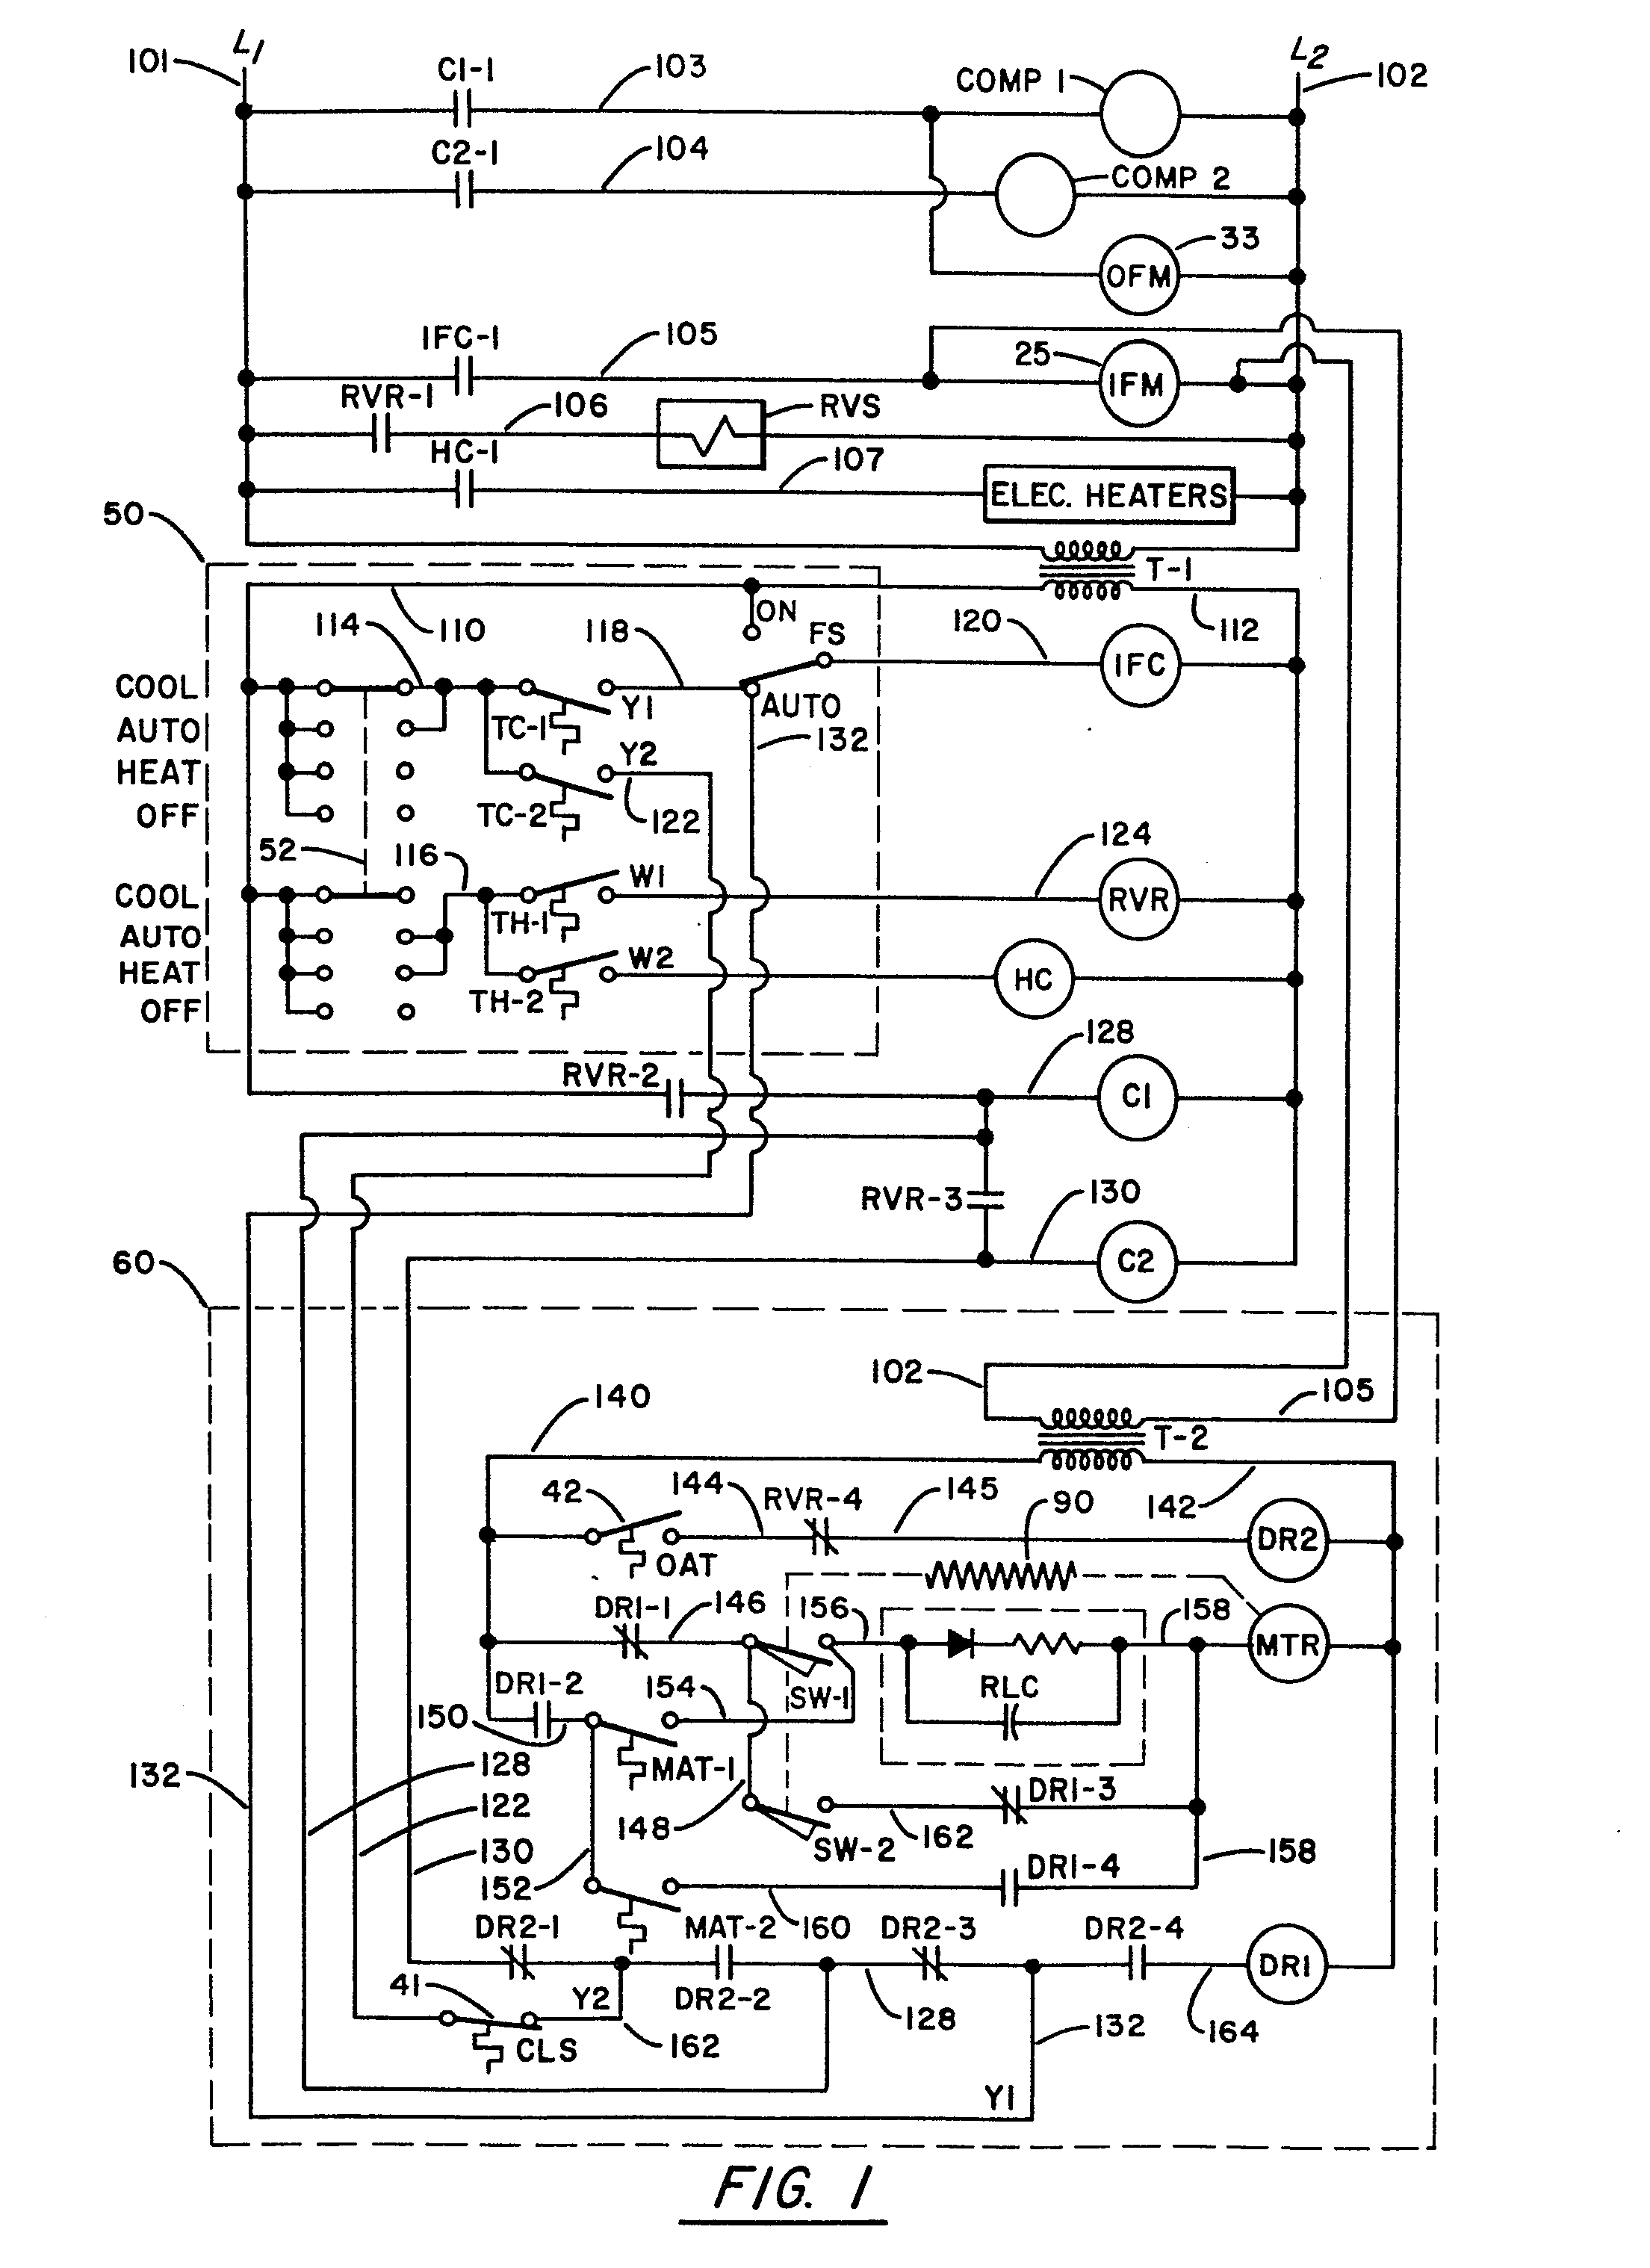 imgf0001 patent ep0080838a1 air conditioning economizer control method economizer wiring diagram at gsmx.co